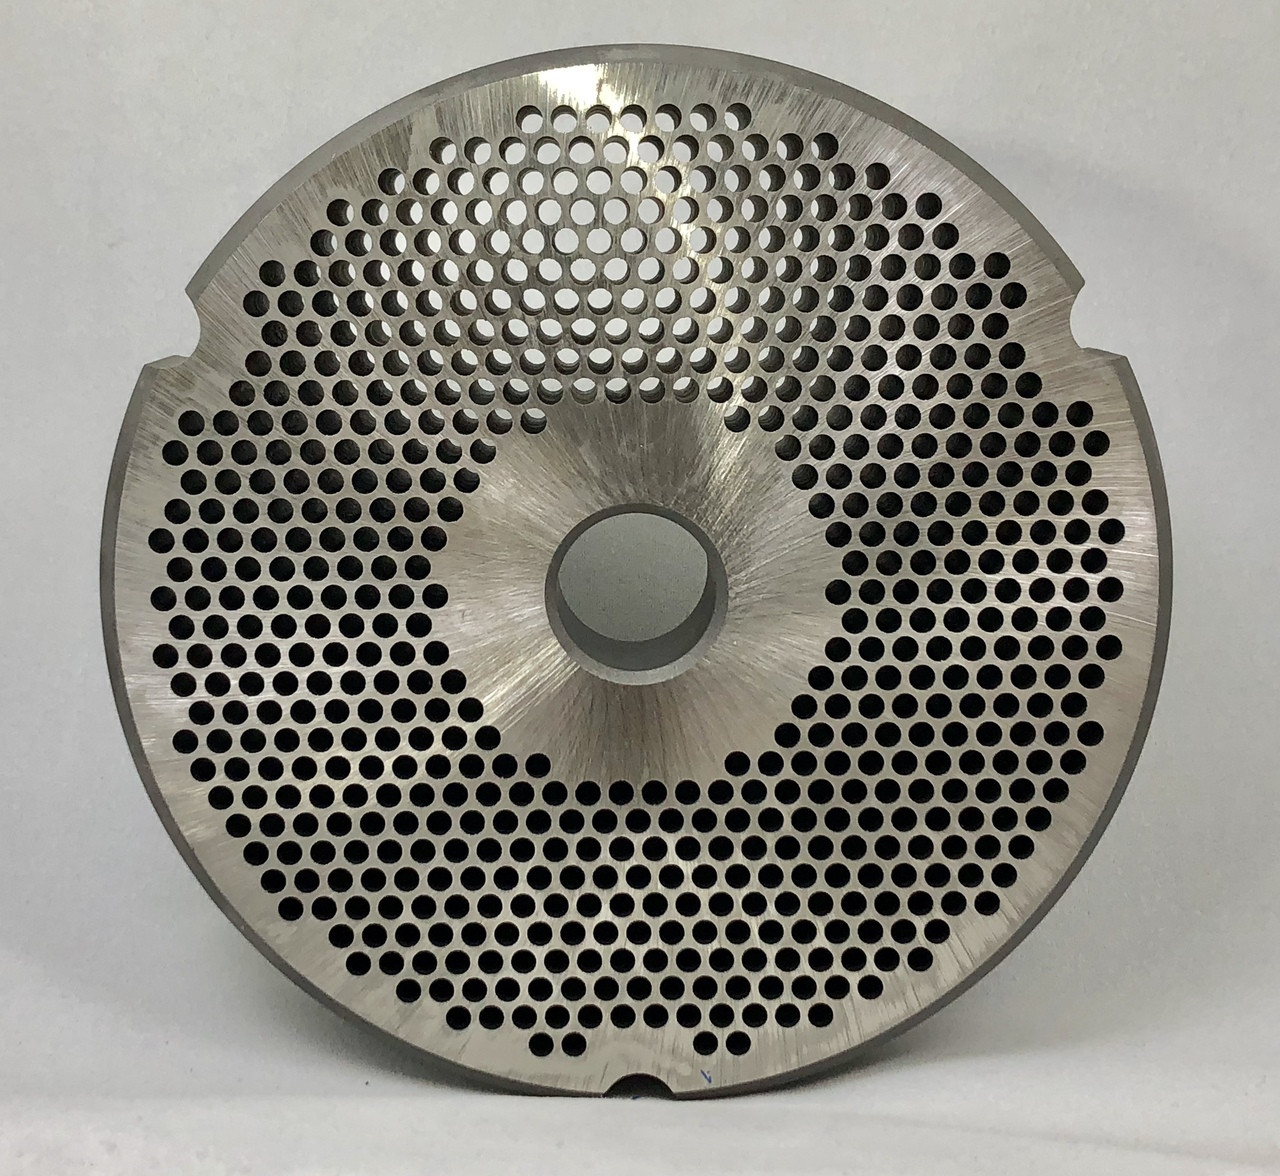 #52 Speco Meat Grinder Plate with 1/8'' Holes - Reversible & Hubbed Plate - 102257 & 106298